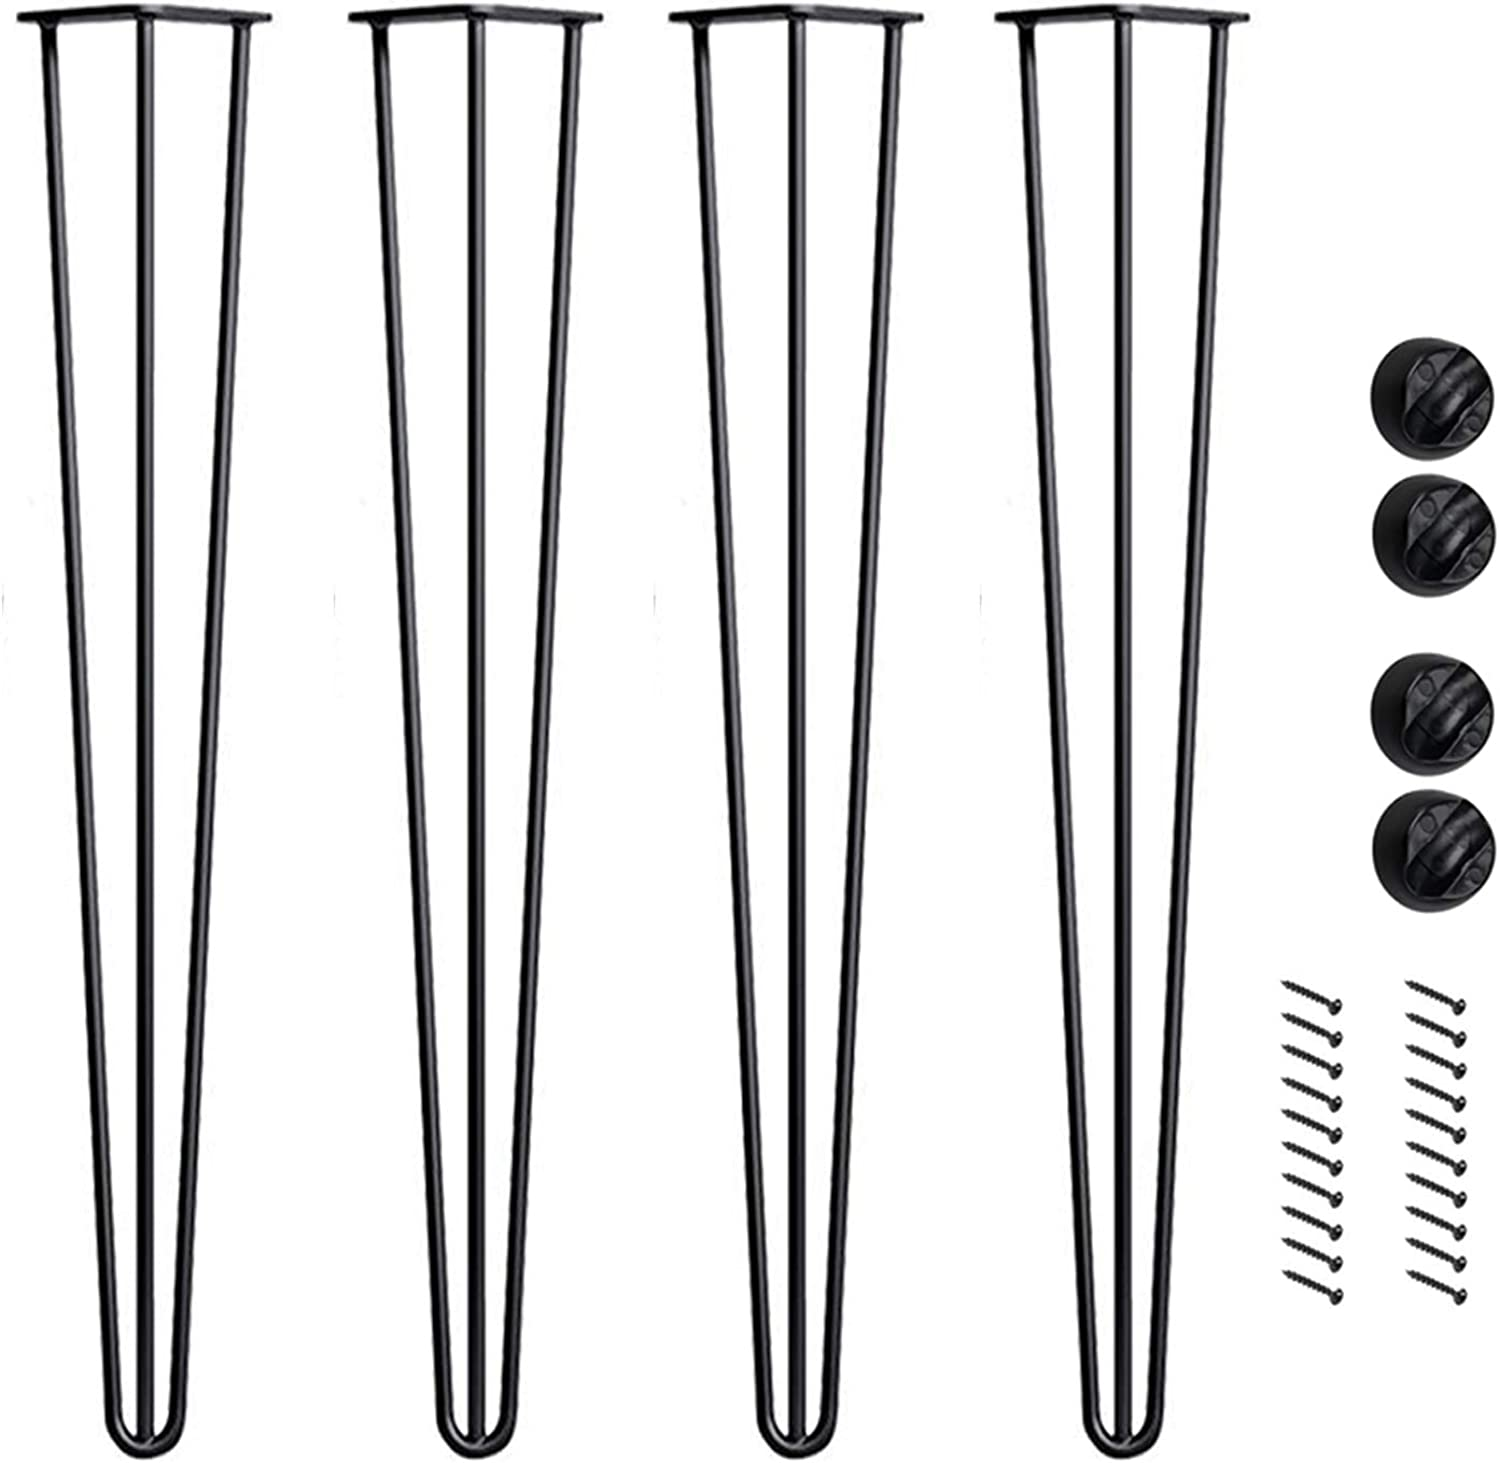 Bronkey 4PCS Vintage Industrial Style Hairpin Legs, 28  Three Rods 3 8  Solid Bar Construction Design, Black Steel Metal Heavy Duty Table Leg, for DIY Living Room TV Stand Sofa Coffee Shop Decoration